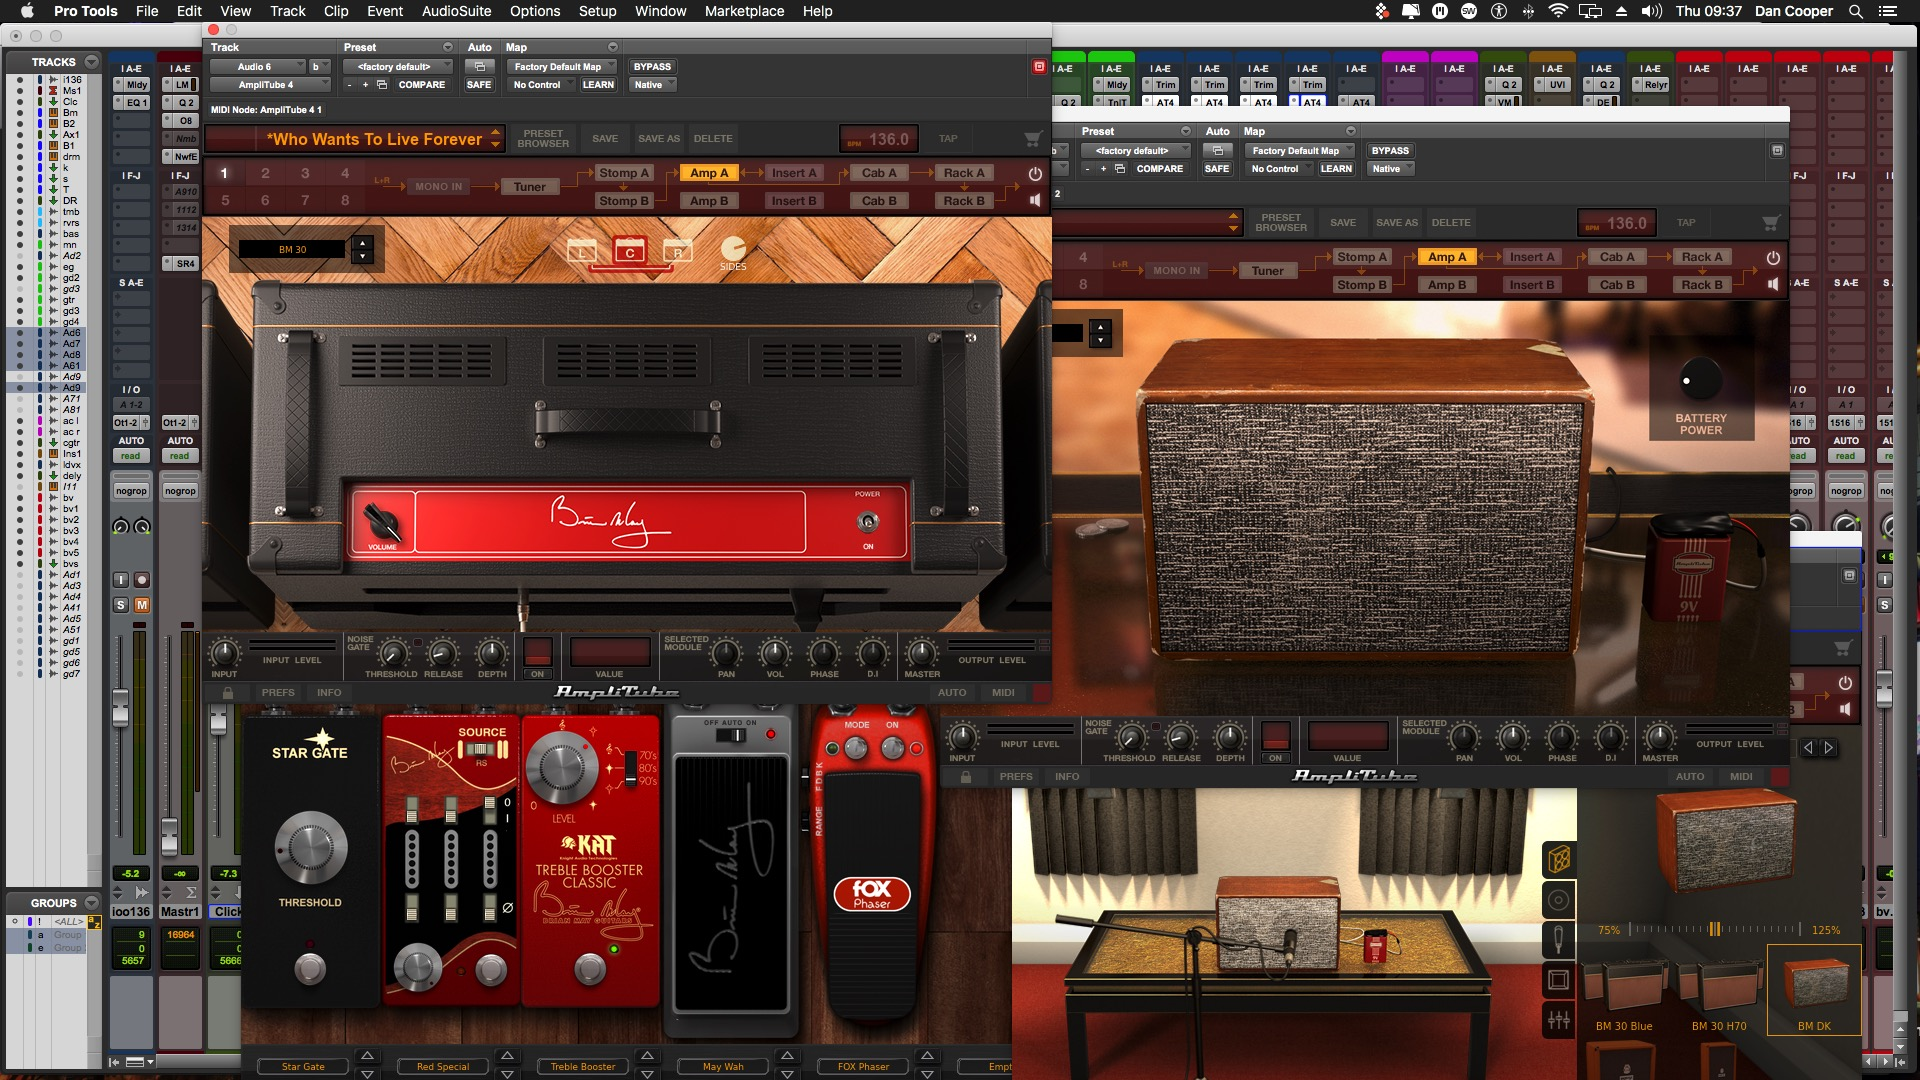 How to get Brian Mays guitar tone in my computer for recording?.jpg